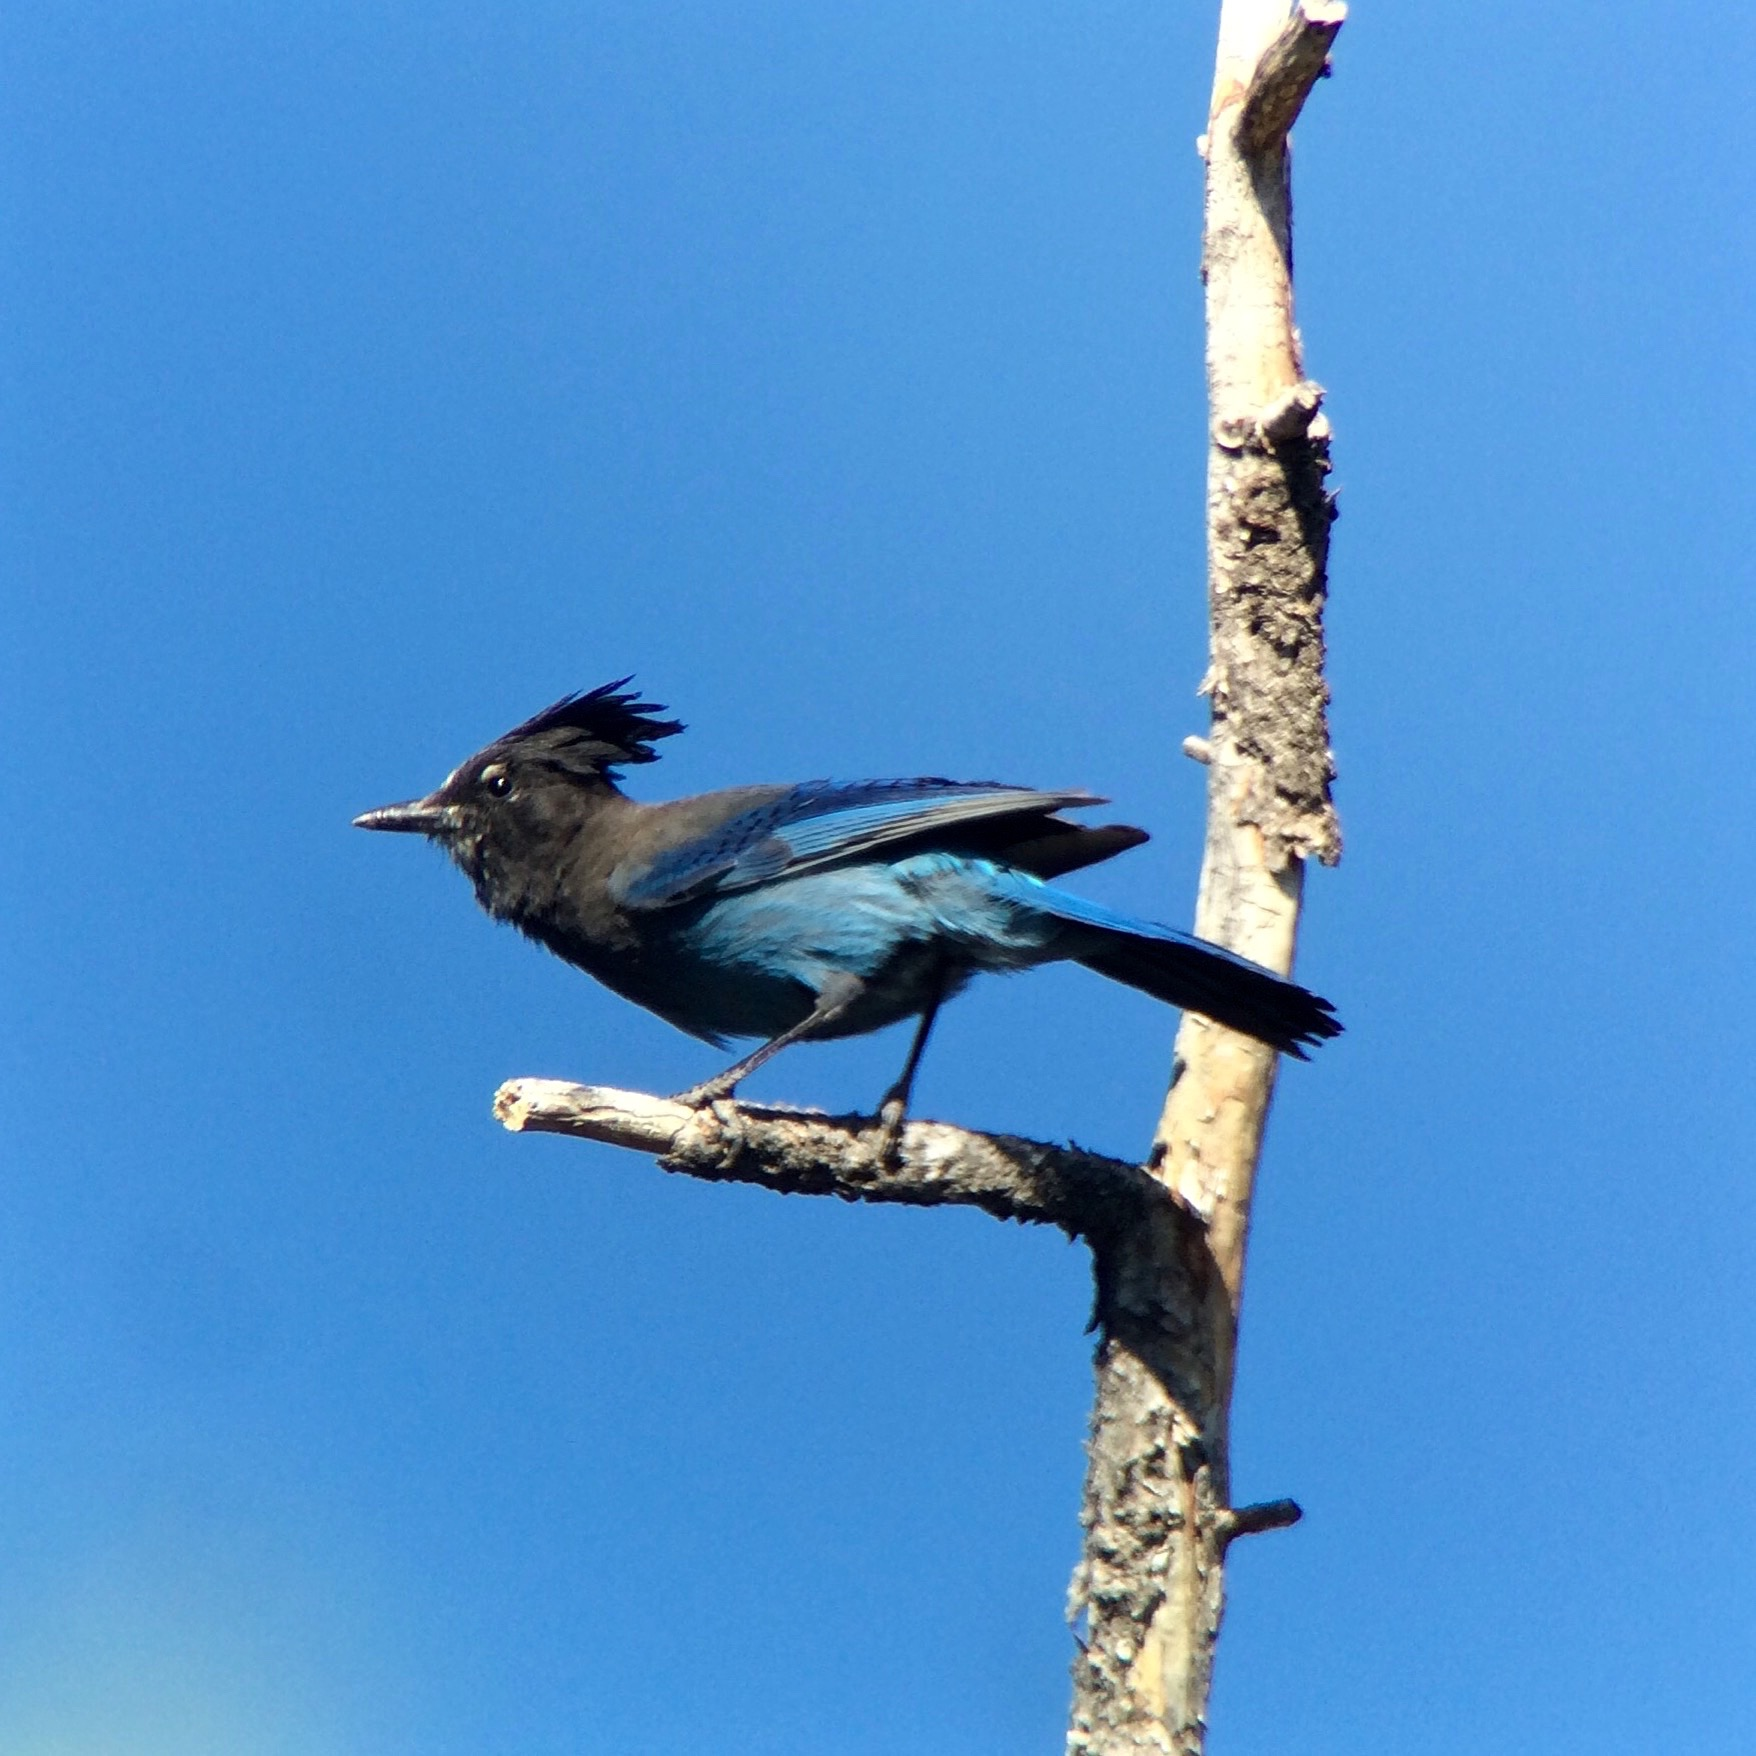 Stellar's Jays were all over the South Rim.